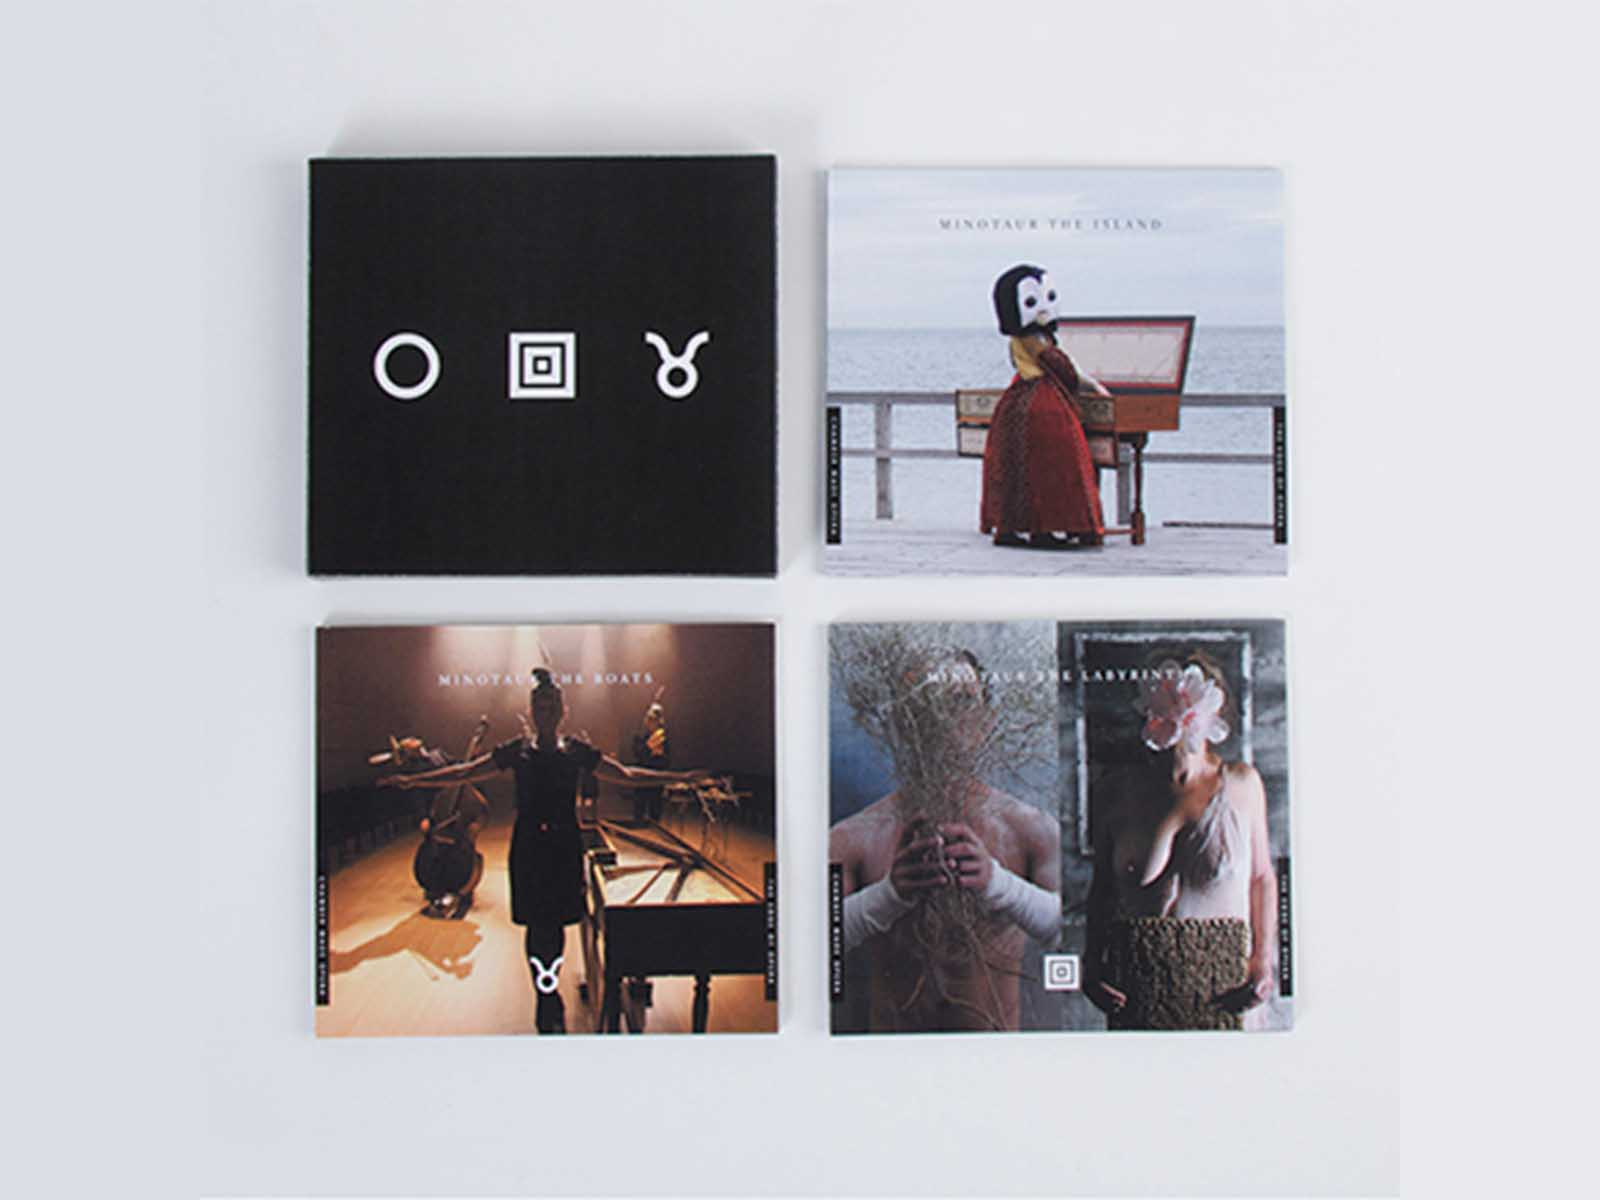 Four CD covers placed next to each other in a square shape